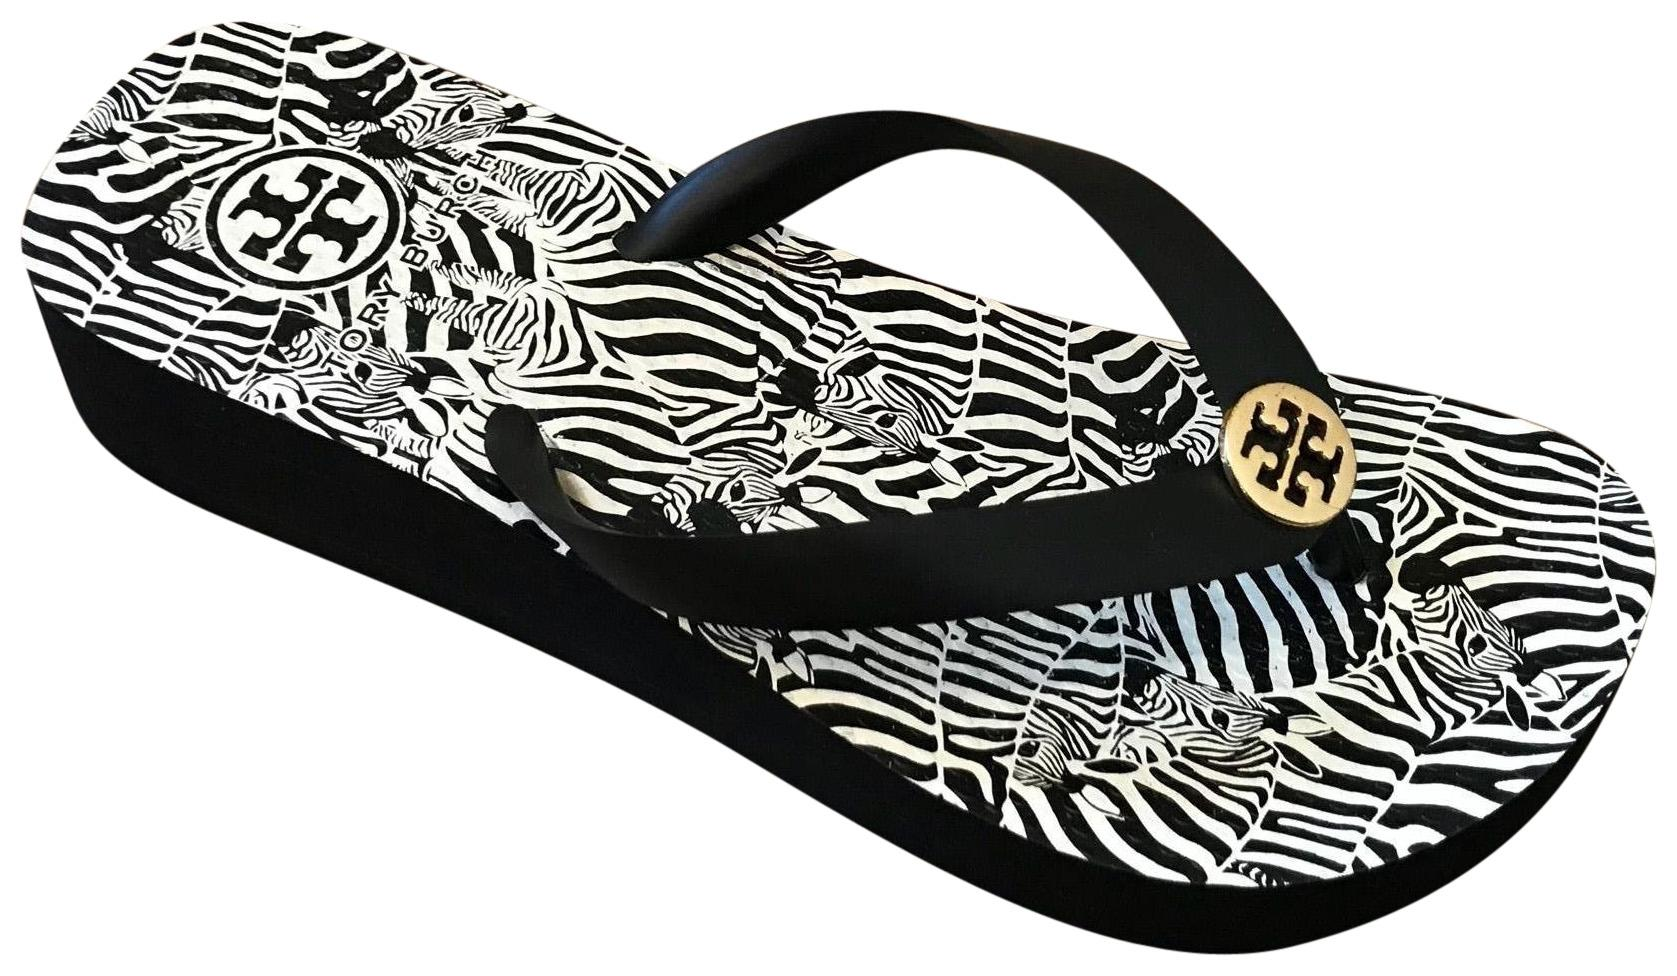 Tory Burch Black and White Sandals Size US 6 Regular (M, B)